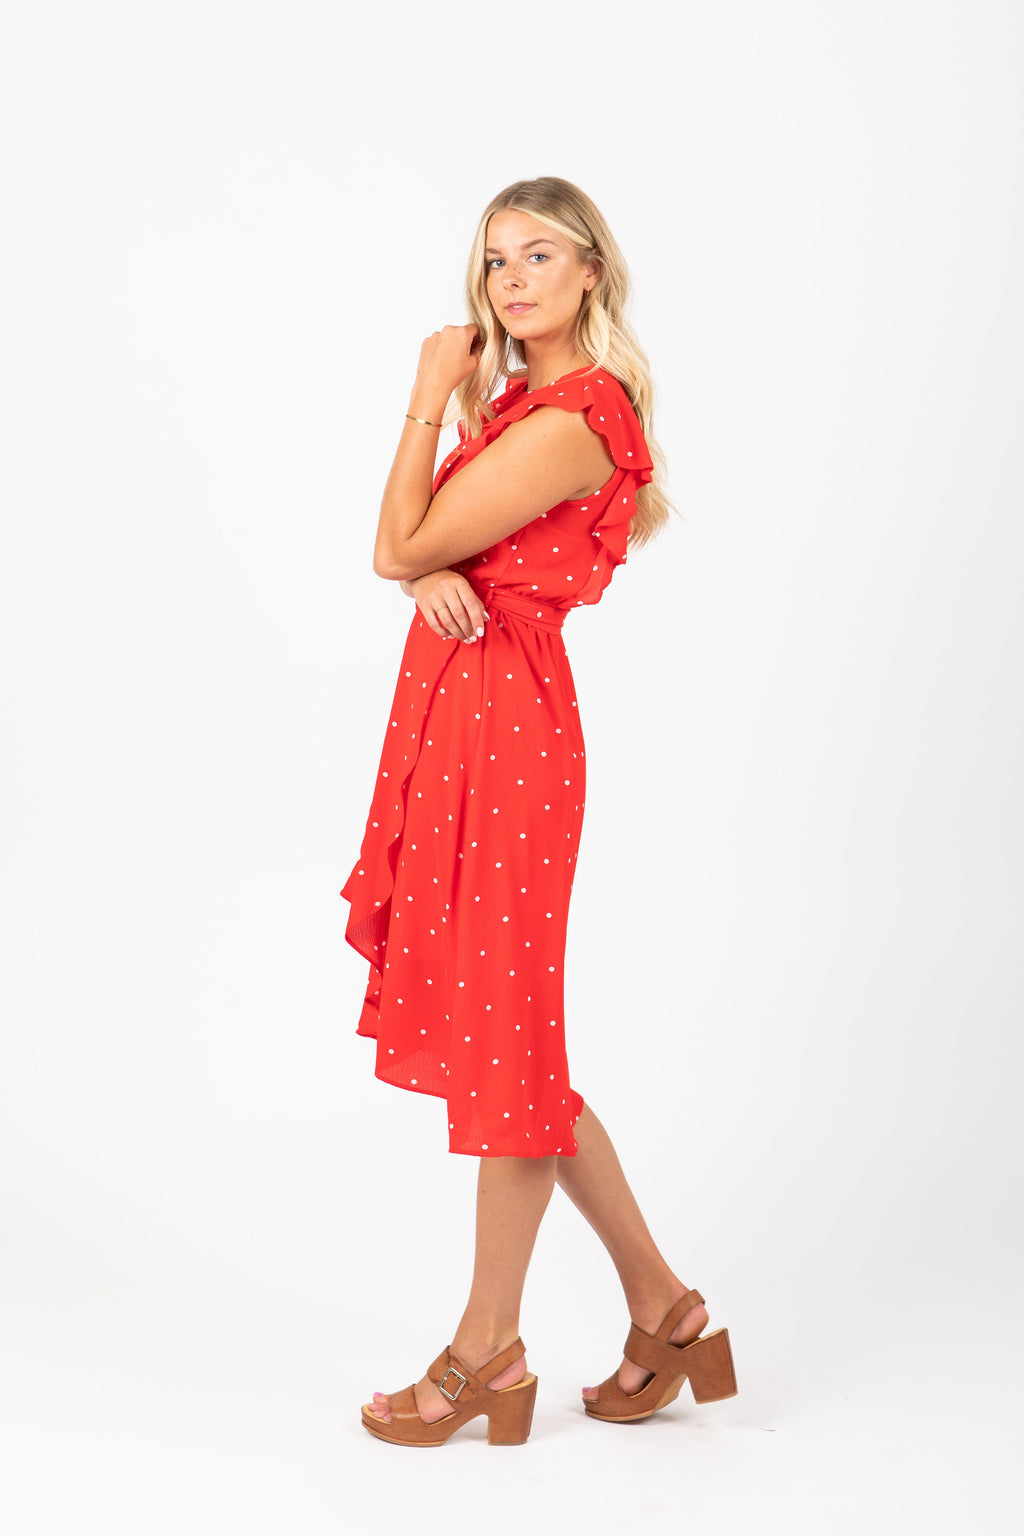 The Quill Ruffle Dot Dress in Red